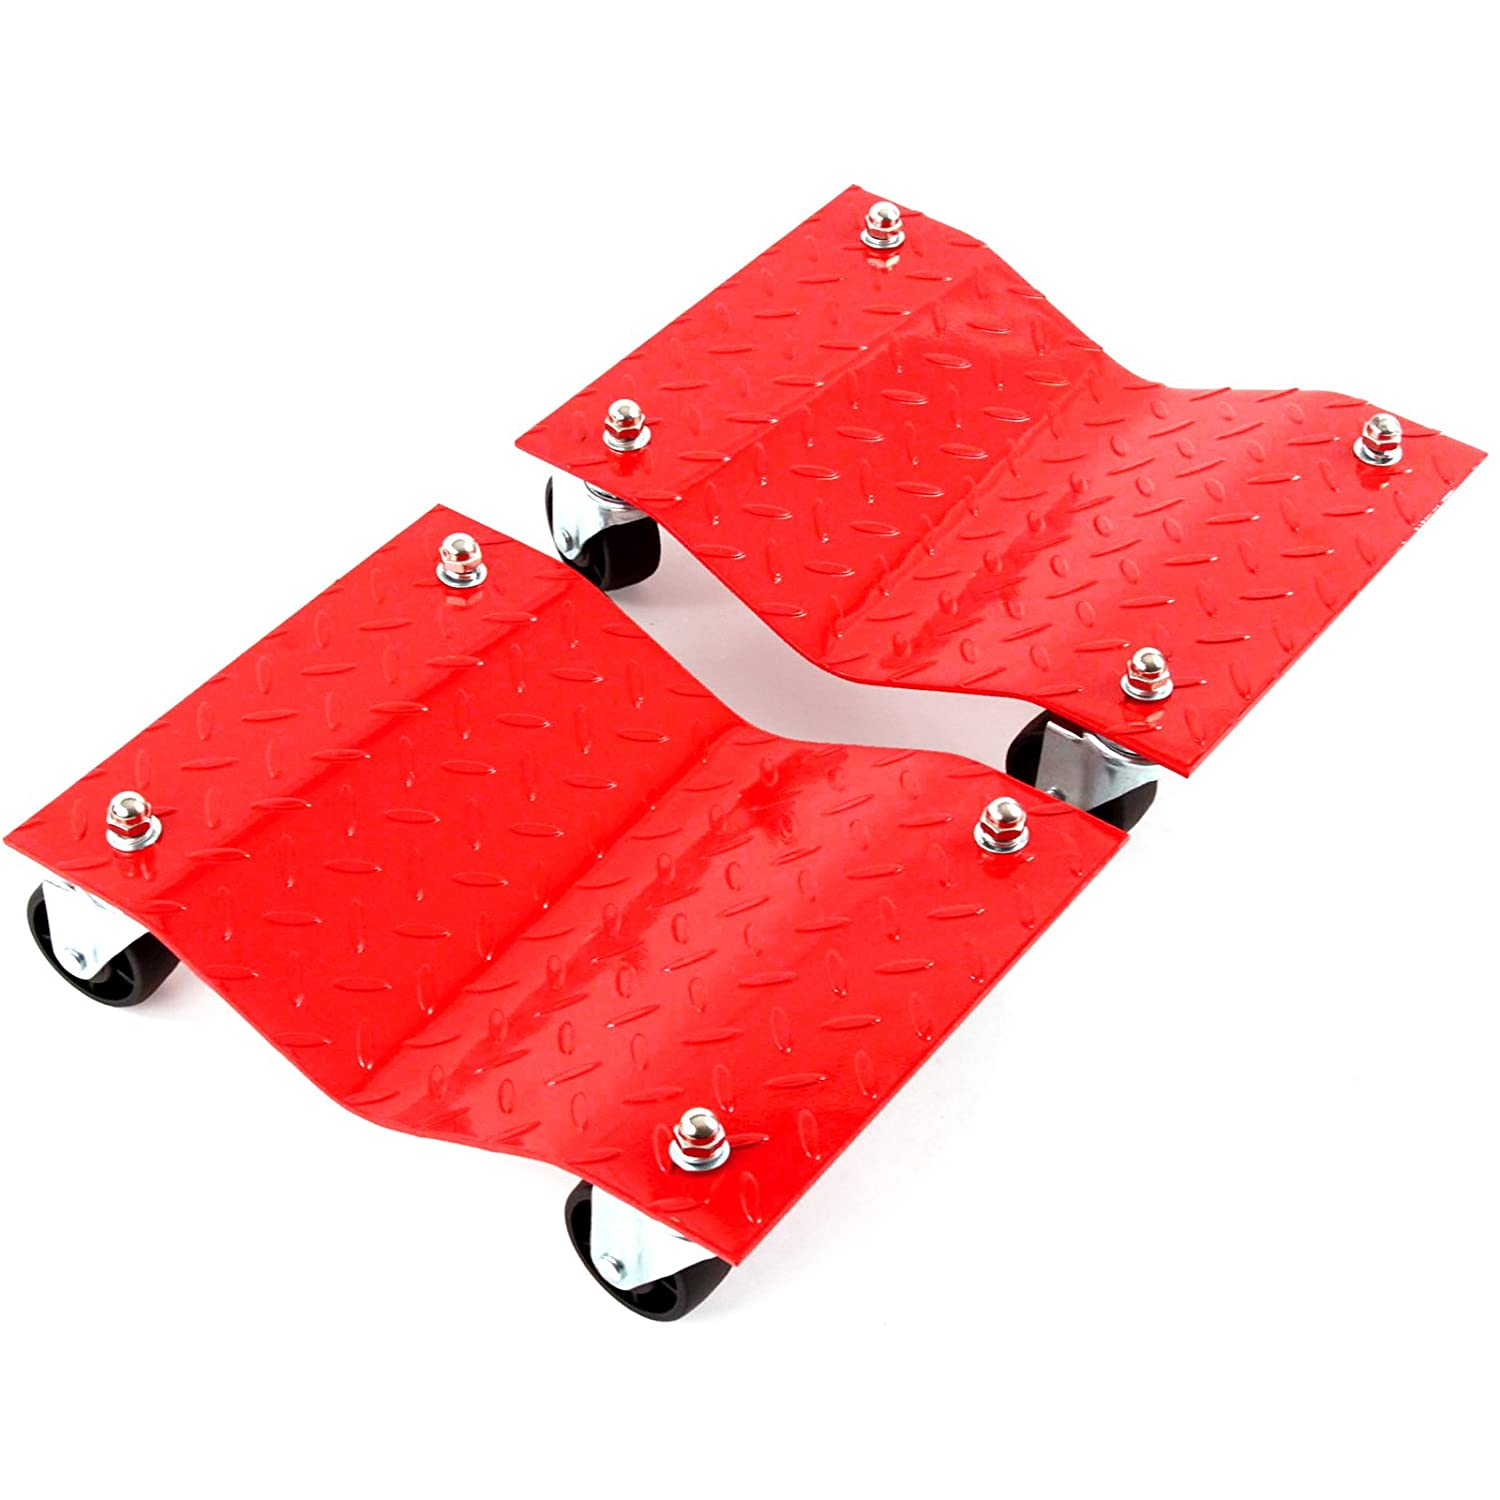 Red Hound Tire Skates}